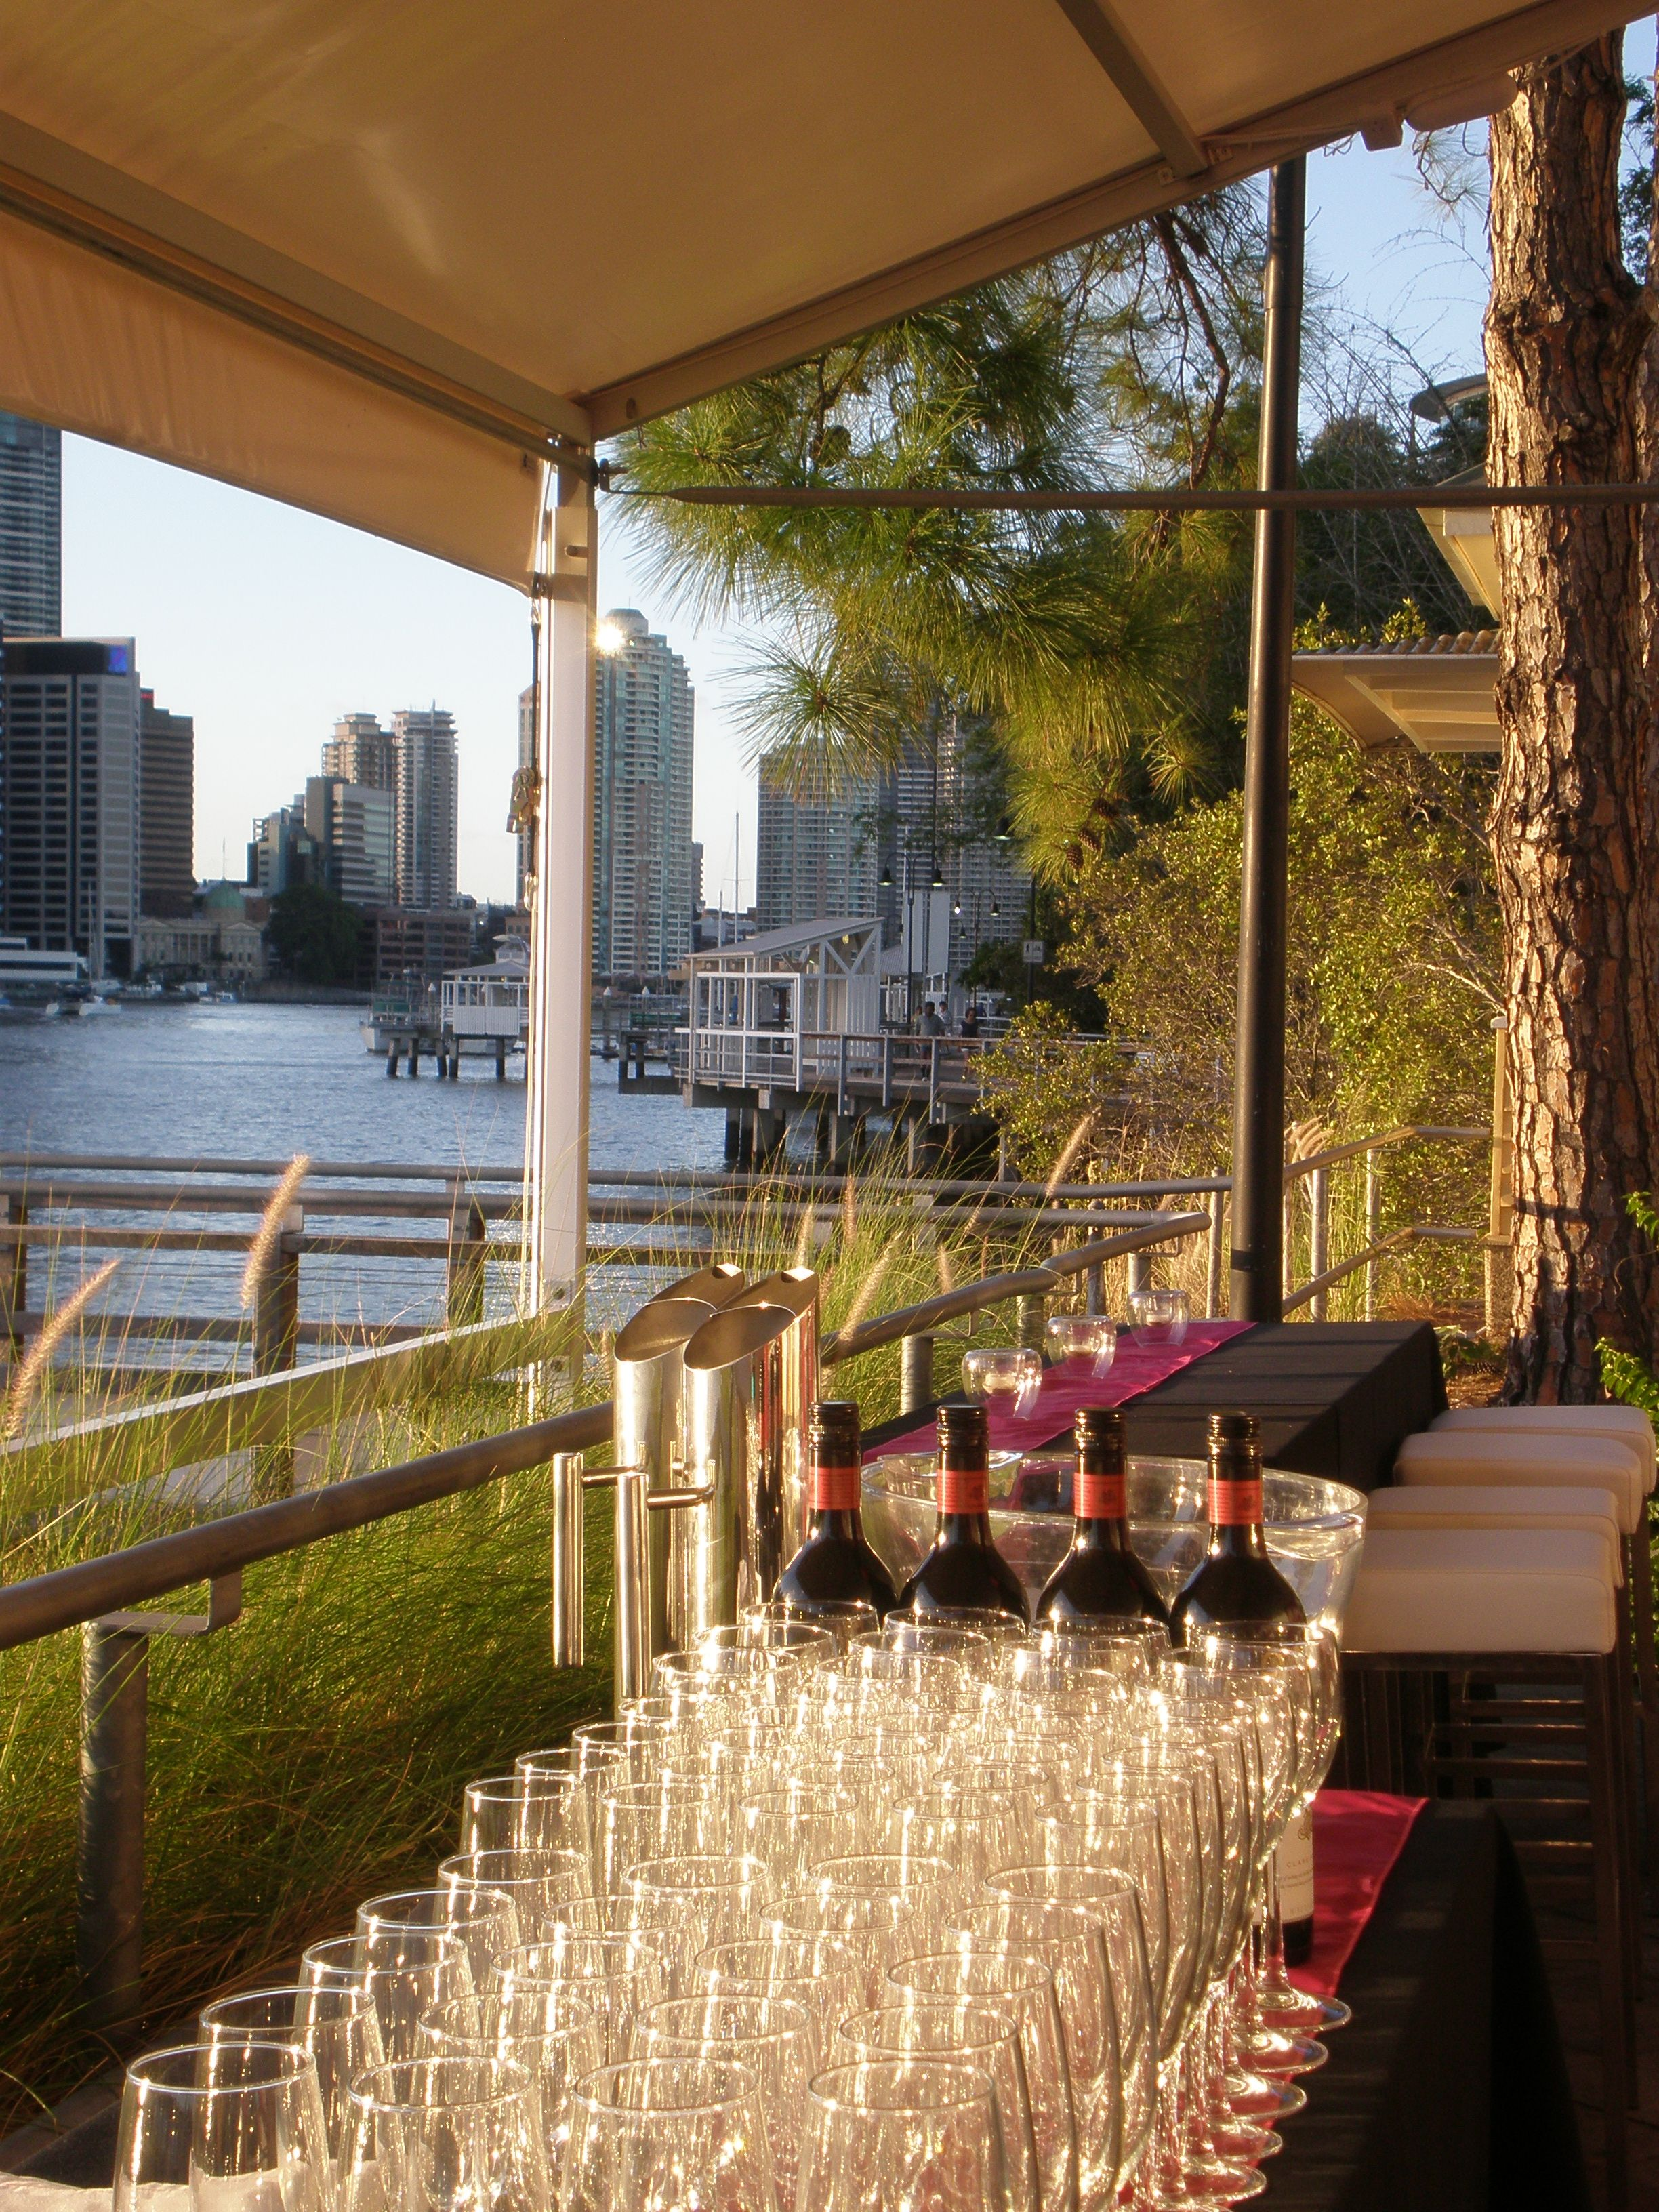 Pin by Riverlife on Riverside Marquee Intimate wedding